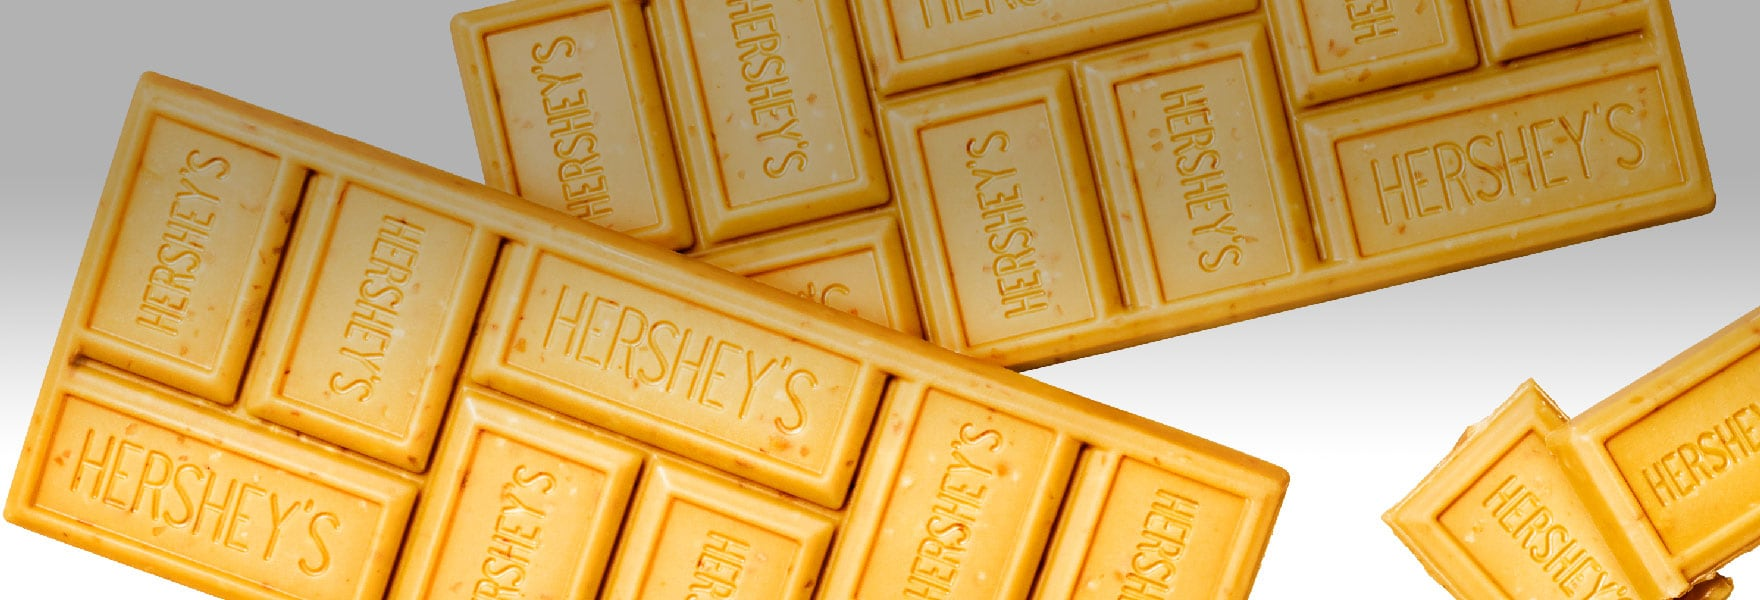 hersheys company profile Apply for hershey jobs, learn about the culture, read reviews and more find hershey careers in your area today skip to main content company profile hershey.